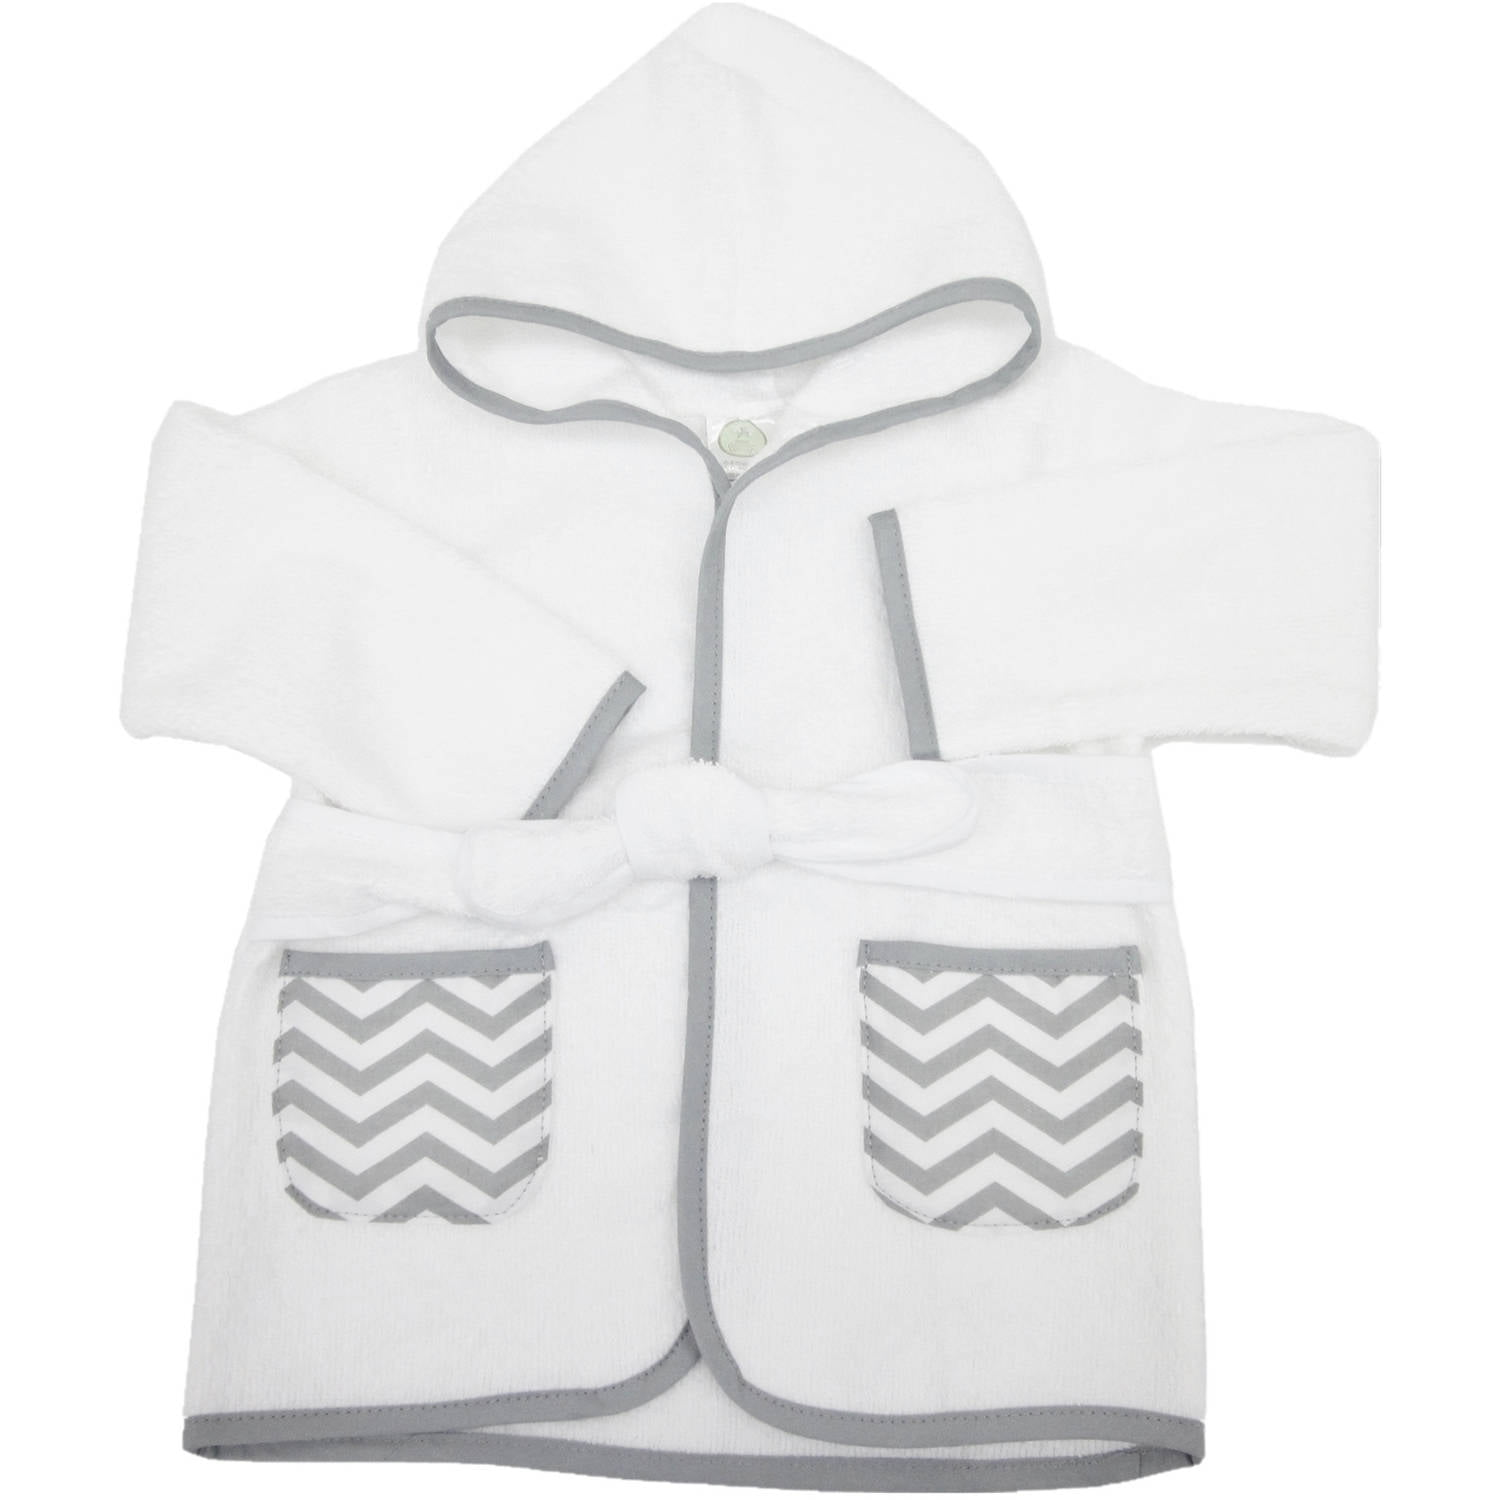 TL Care 0-9 Months Baby Bathrobe Made with Organic Cotton, Gray Zigzag by American Baby Company